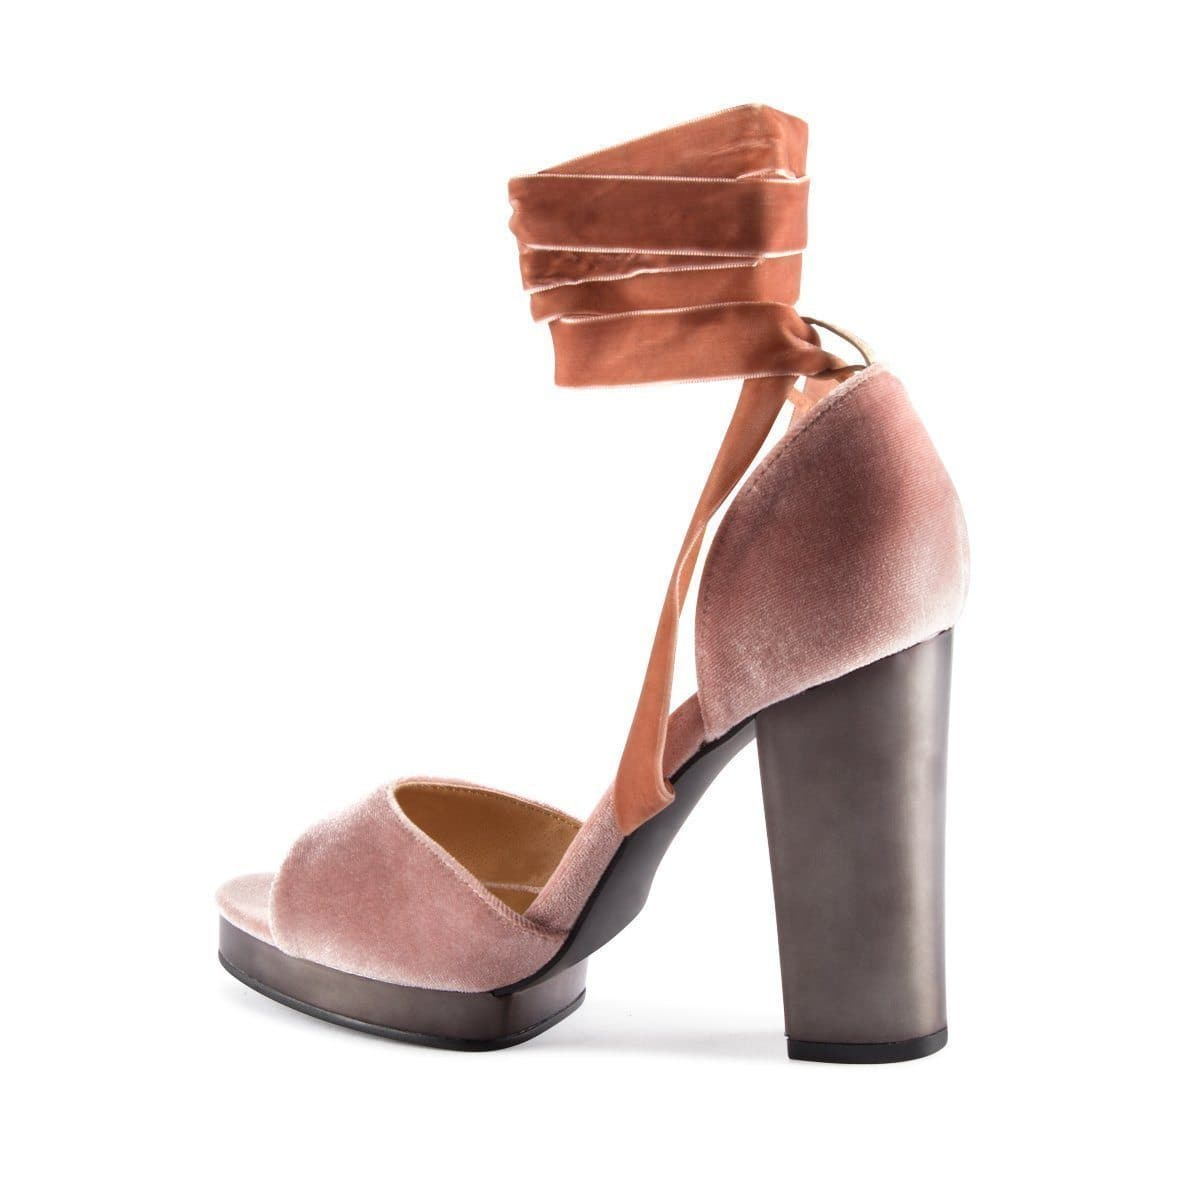 Christina block heel platform with bow in Mink